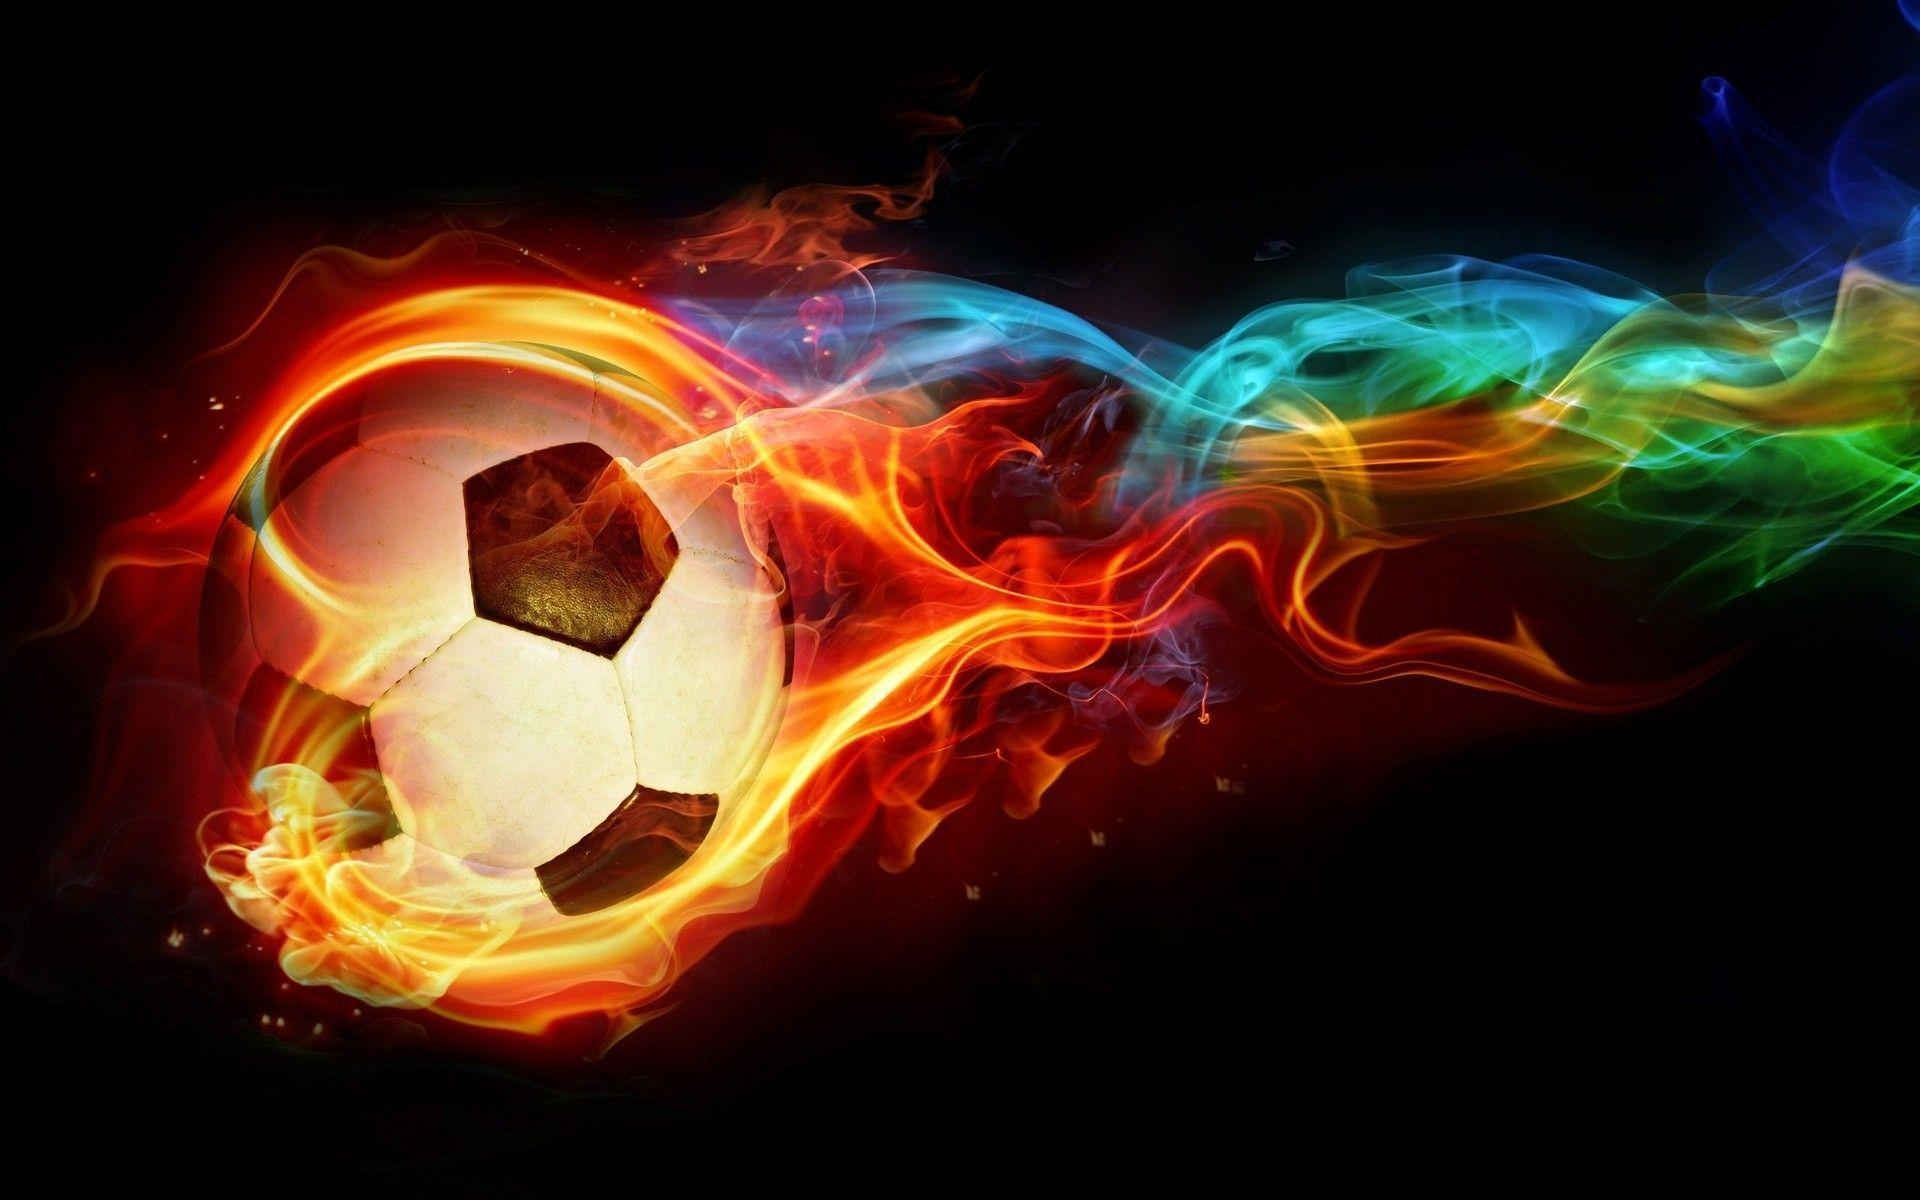 Soccer Ball Wallpapers Hd Backgrounds Wallpapers 47 HD Wallpapers